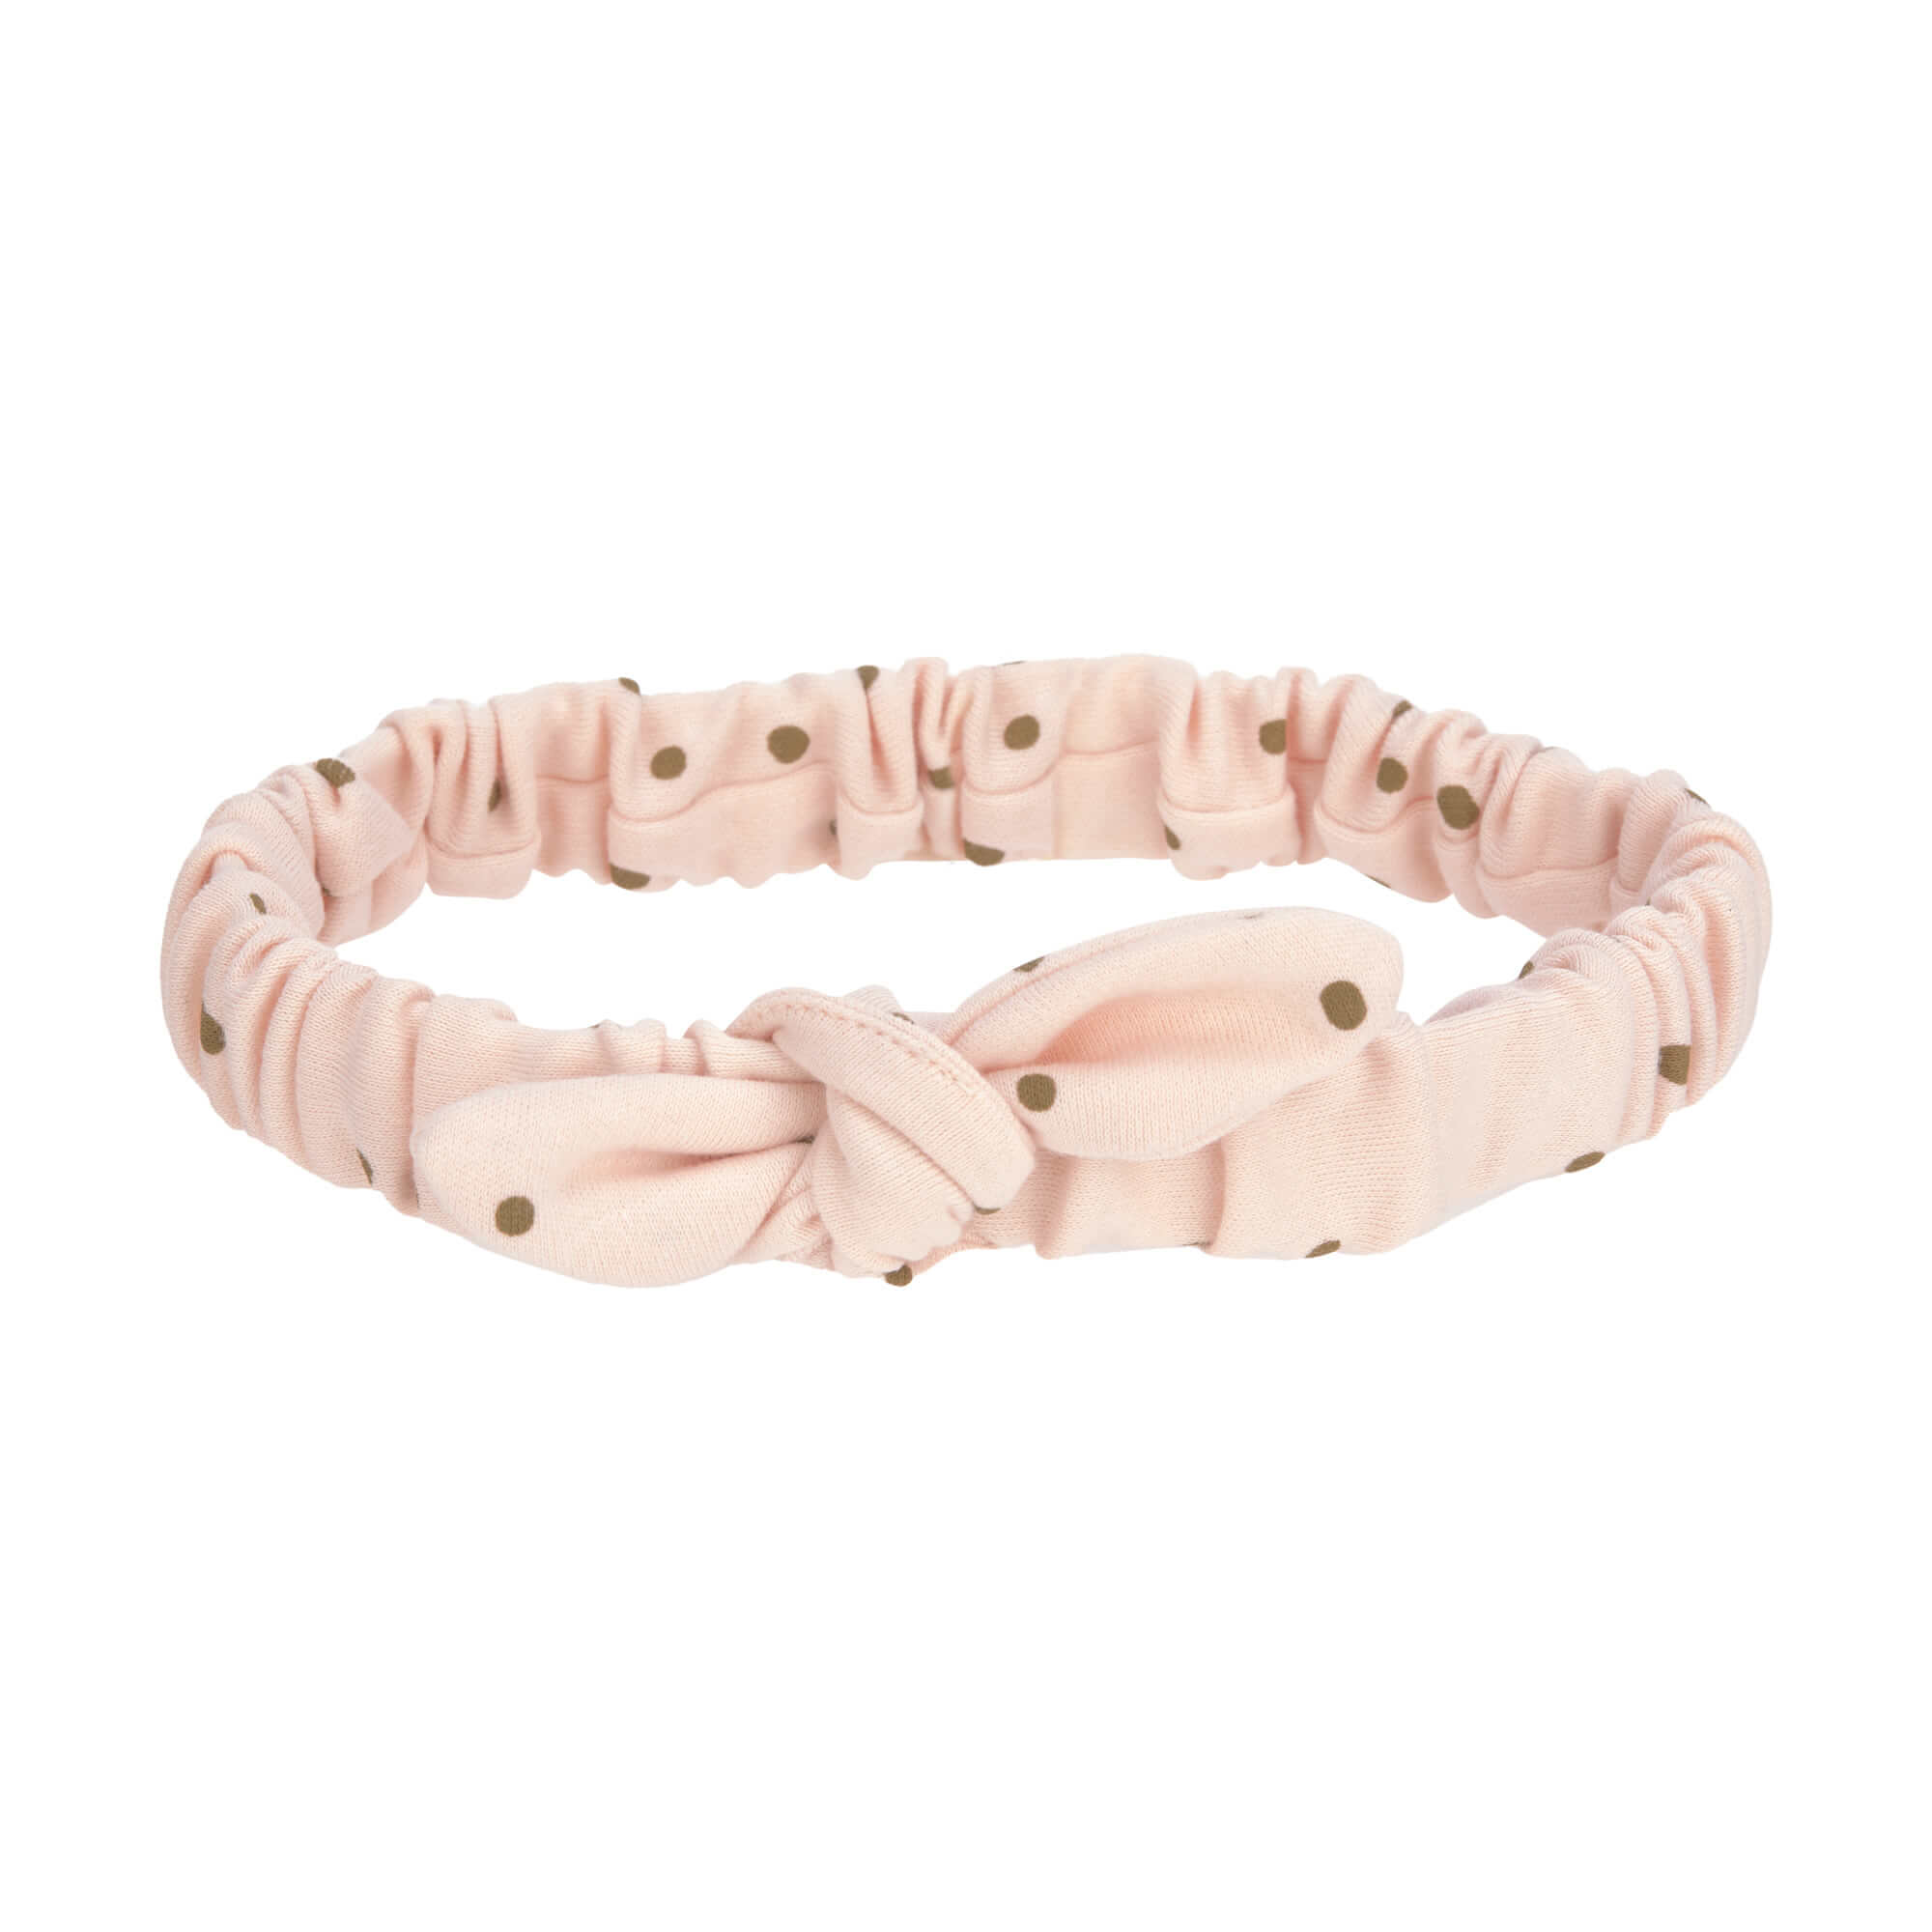 Baby Stirnband - Dots Powder Pink - 12 bis 36 Monate - Lässig